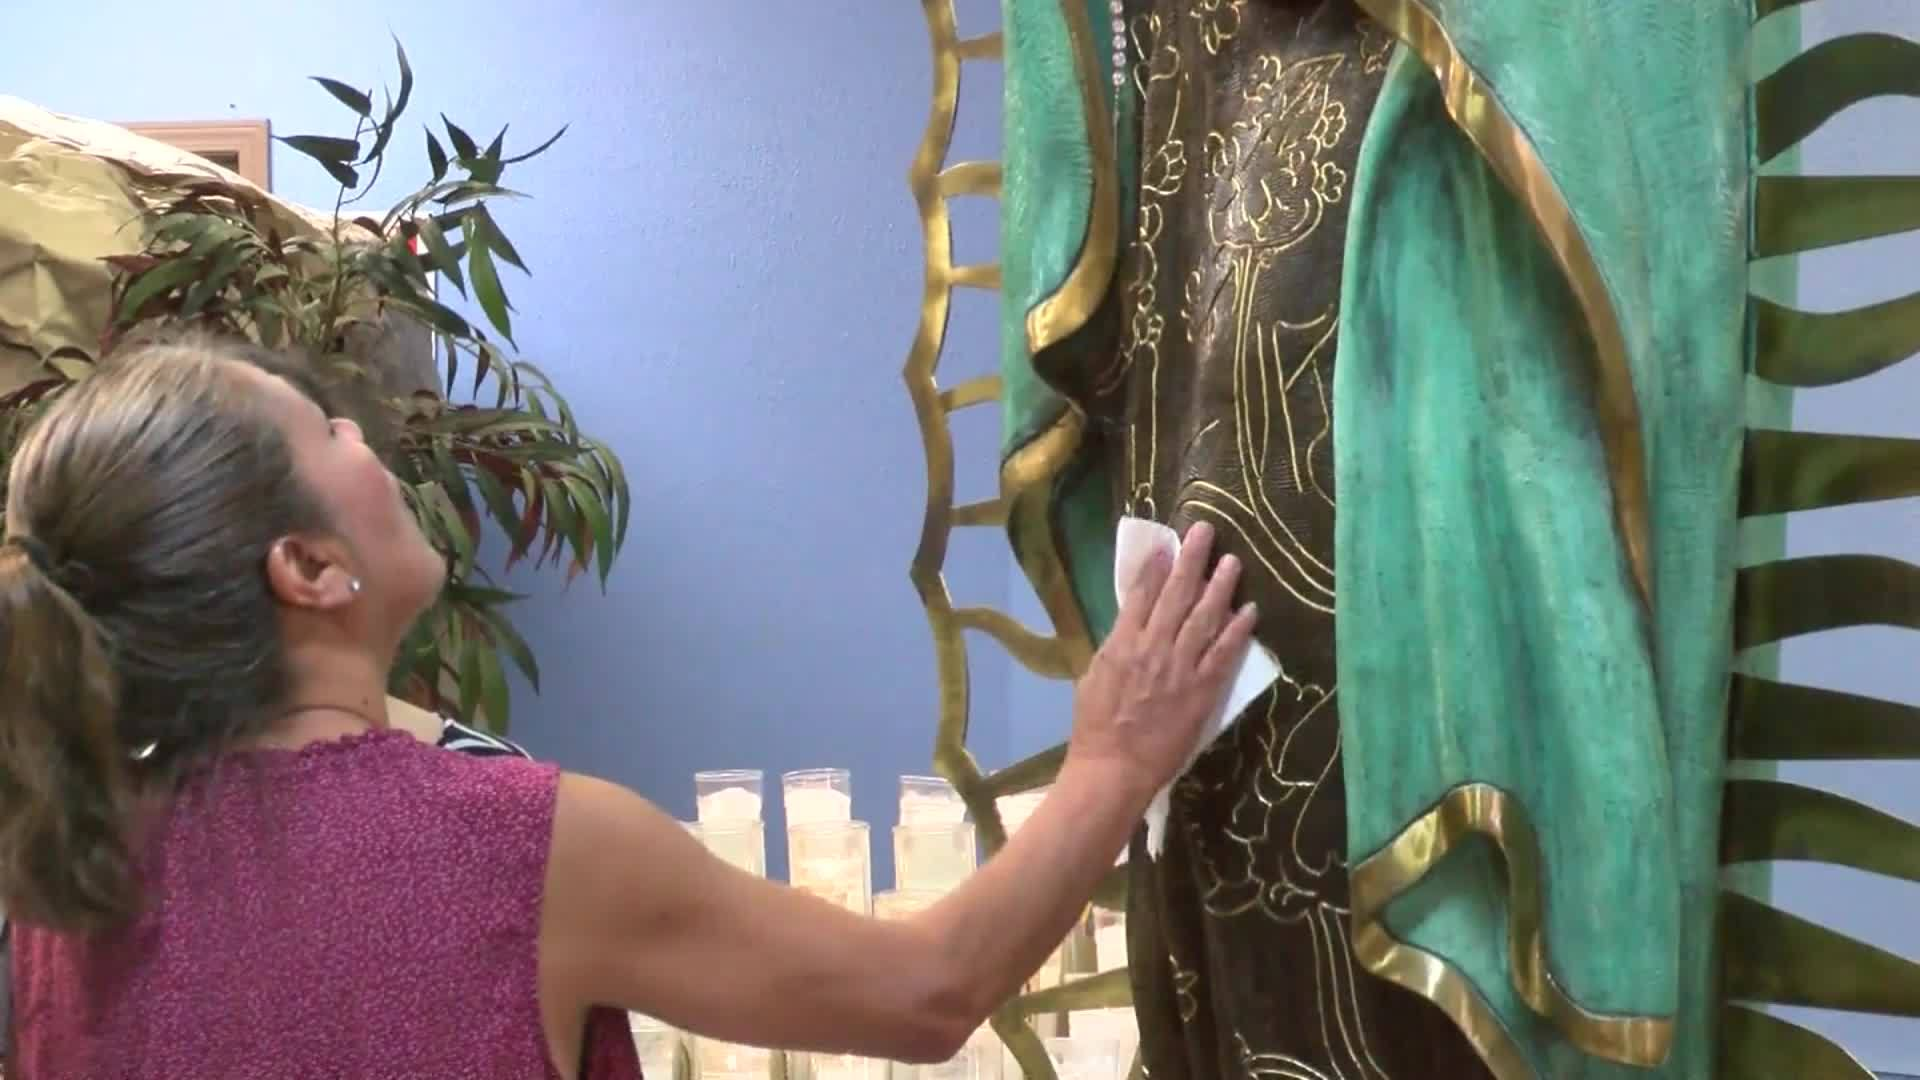 Virgin Mary crying in Hobbs, New Mexico